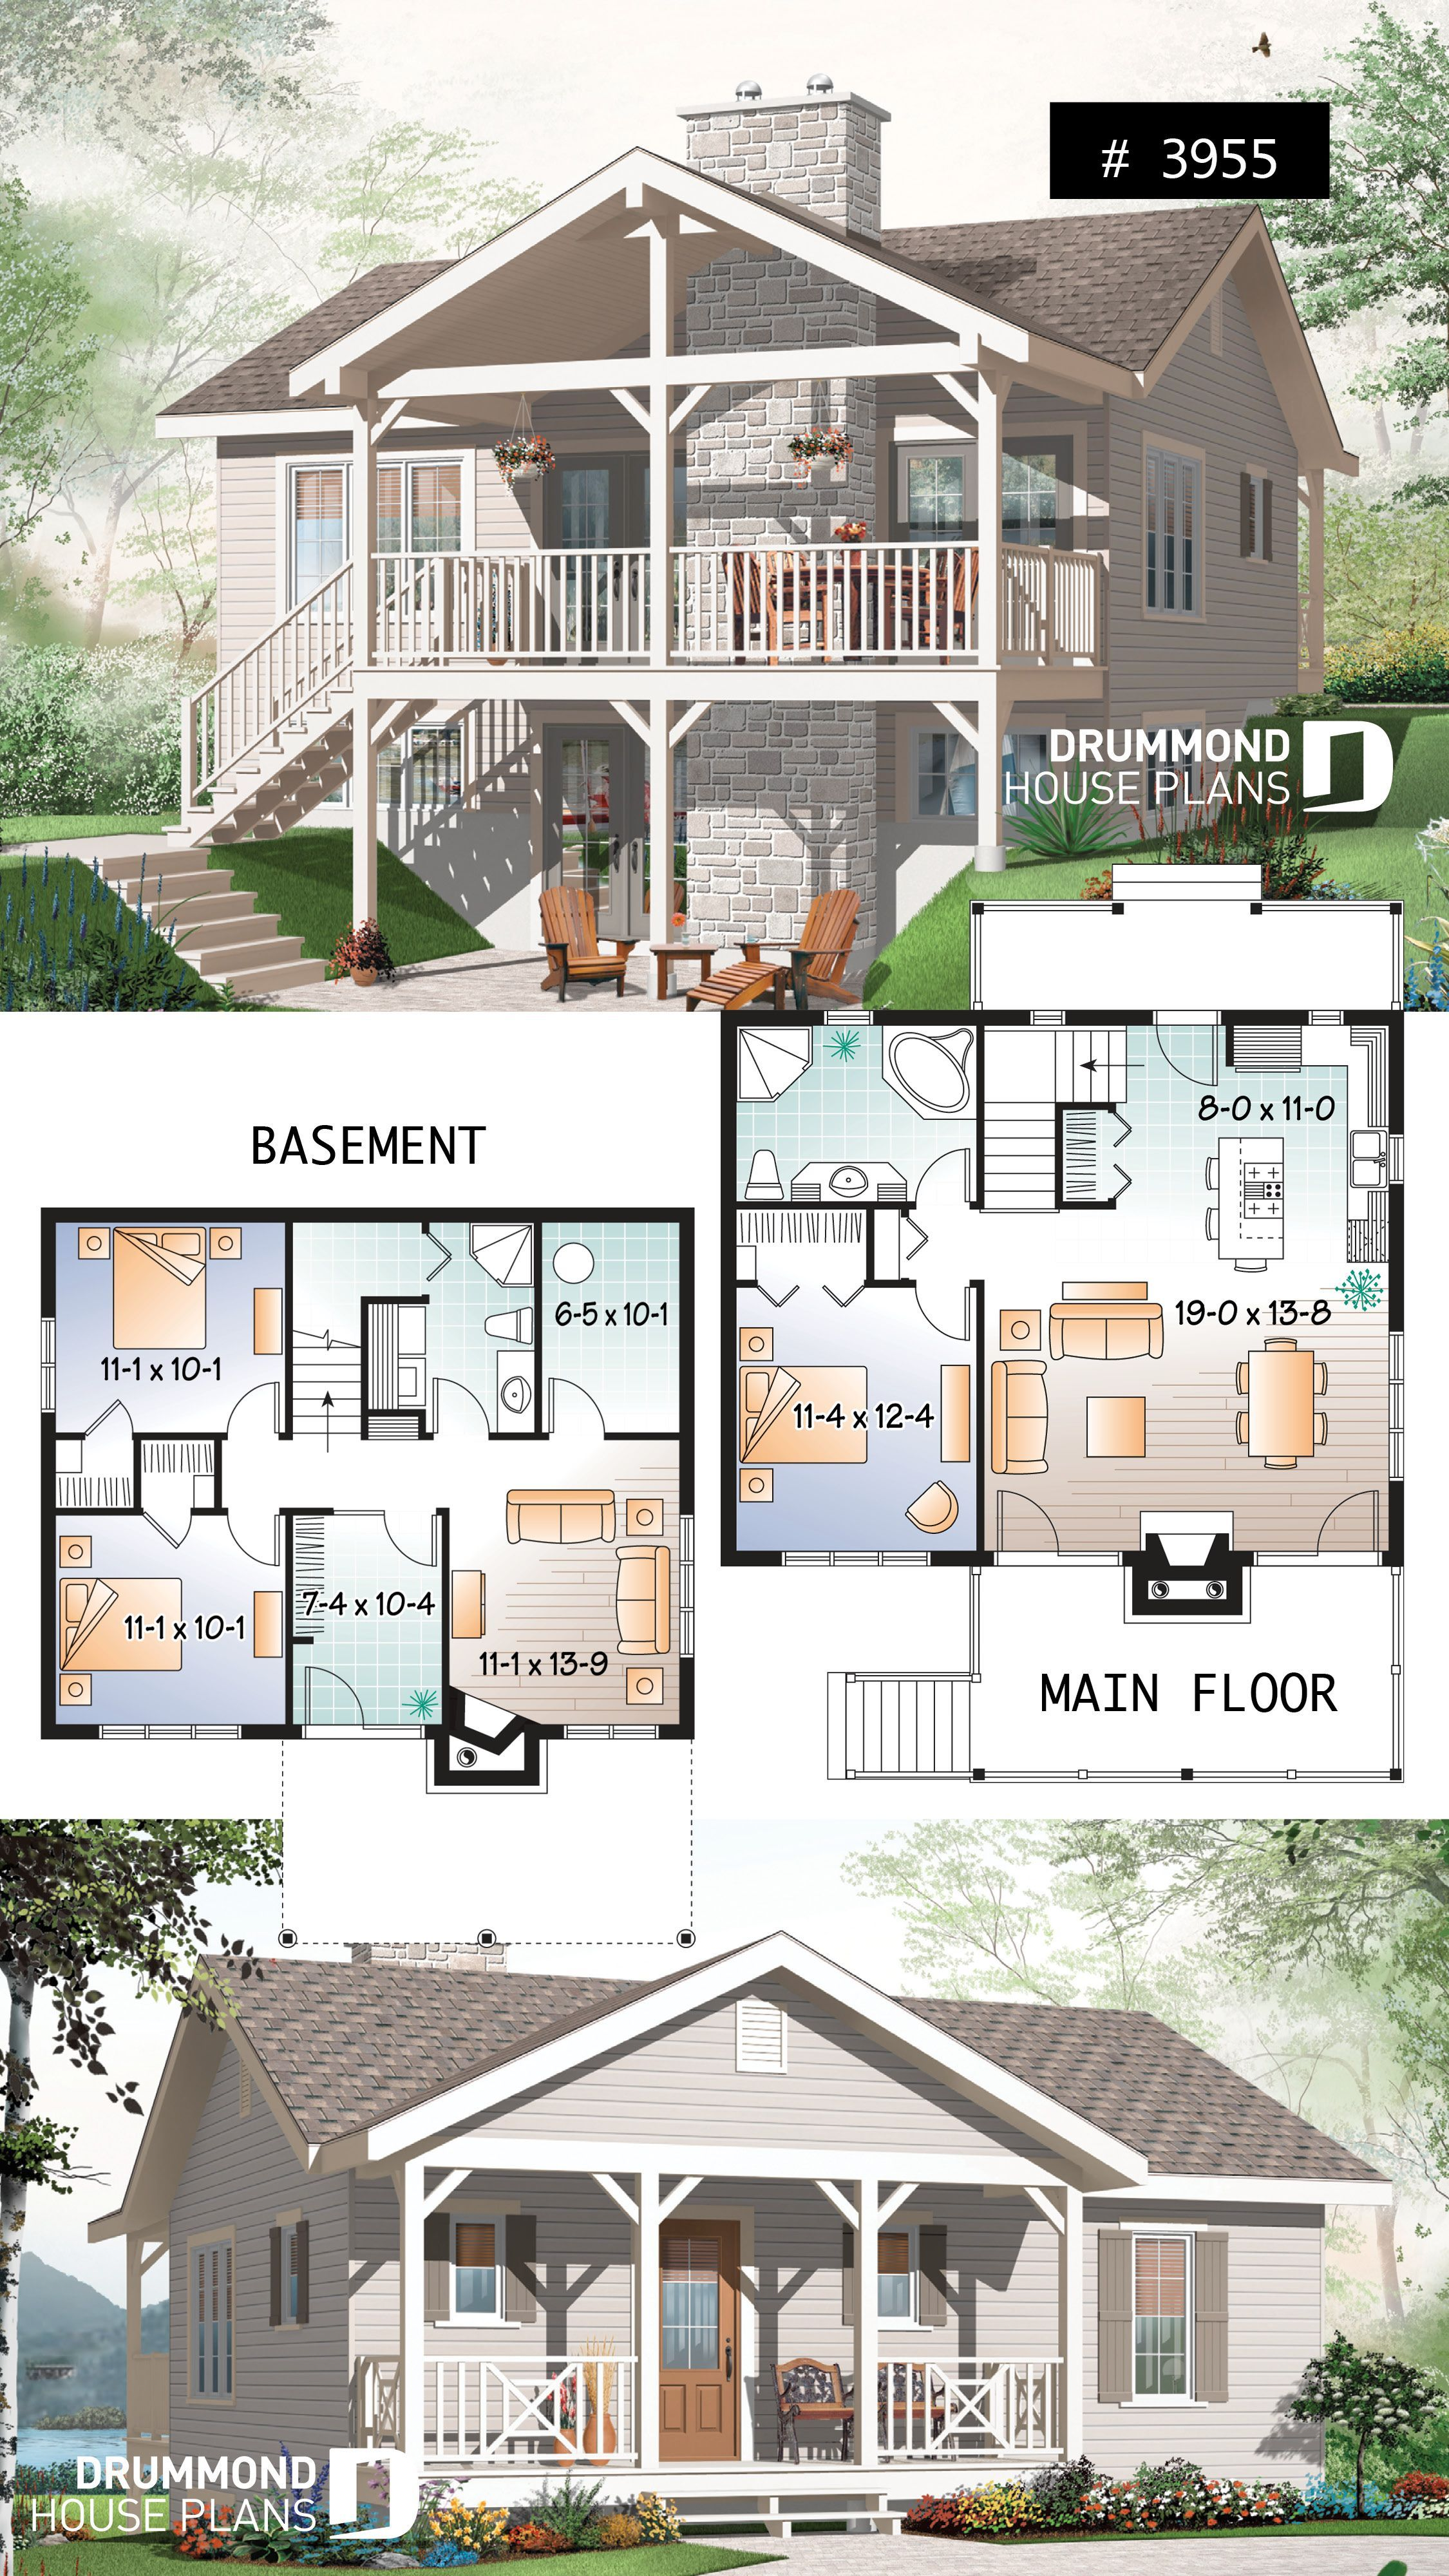 Affordable Simple Northwest Style Lakefront Home Plan 3 Bedrooms 2 Living 2 Fireplaces Covered Sims House Plans Drummond House Plans Sims 4 House Building